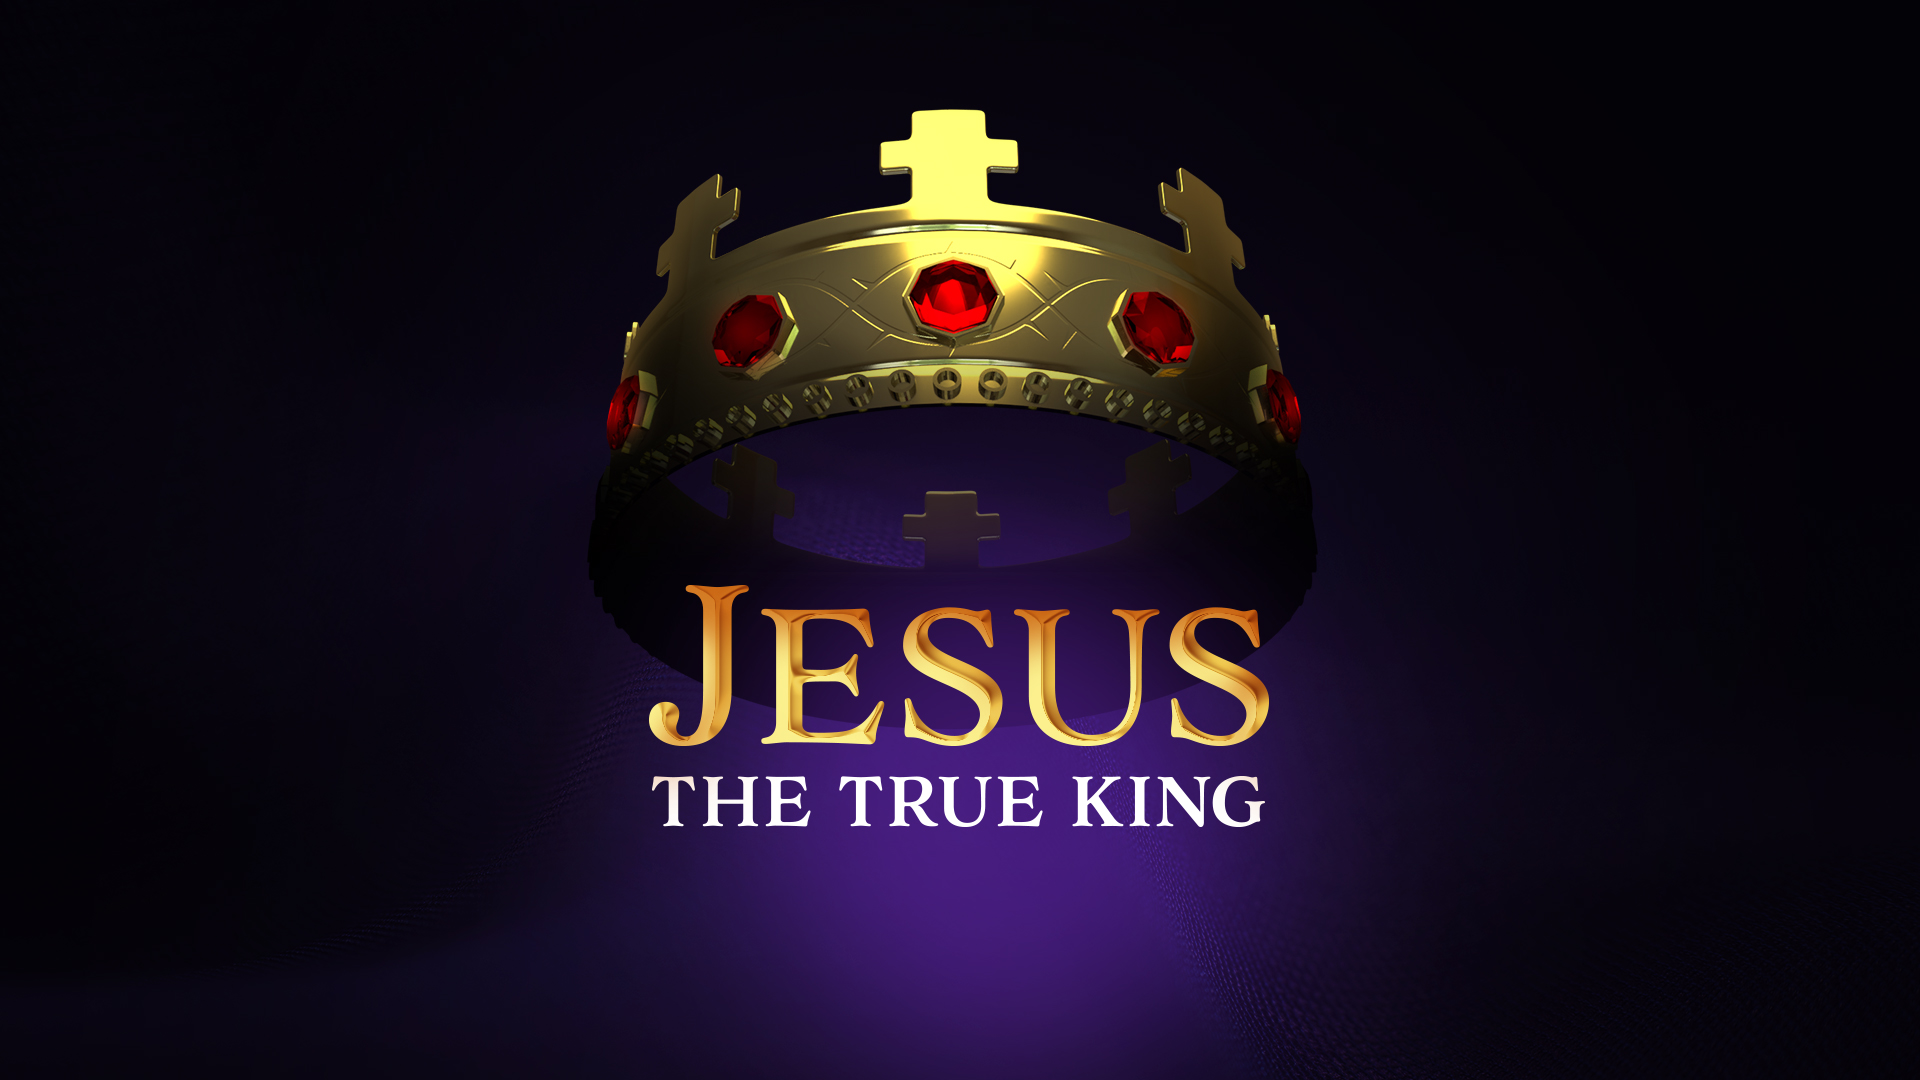 Jesus-the-True-King-5.jpg